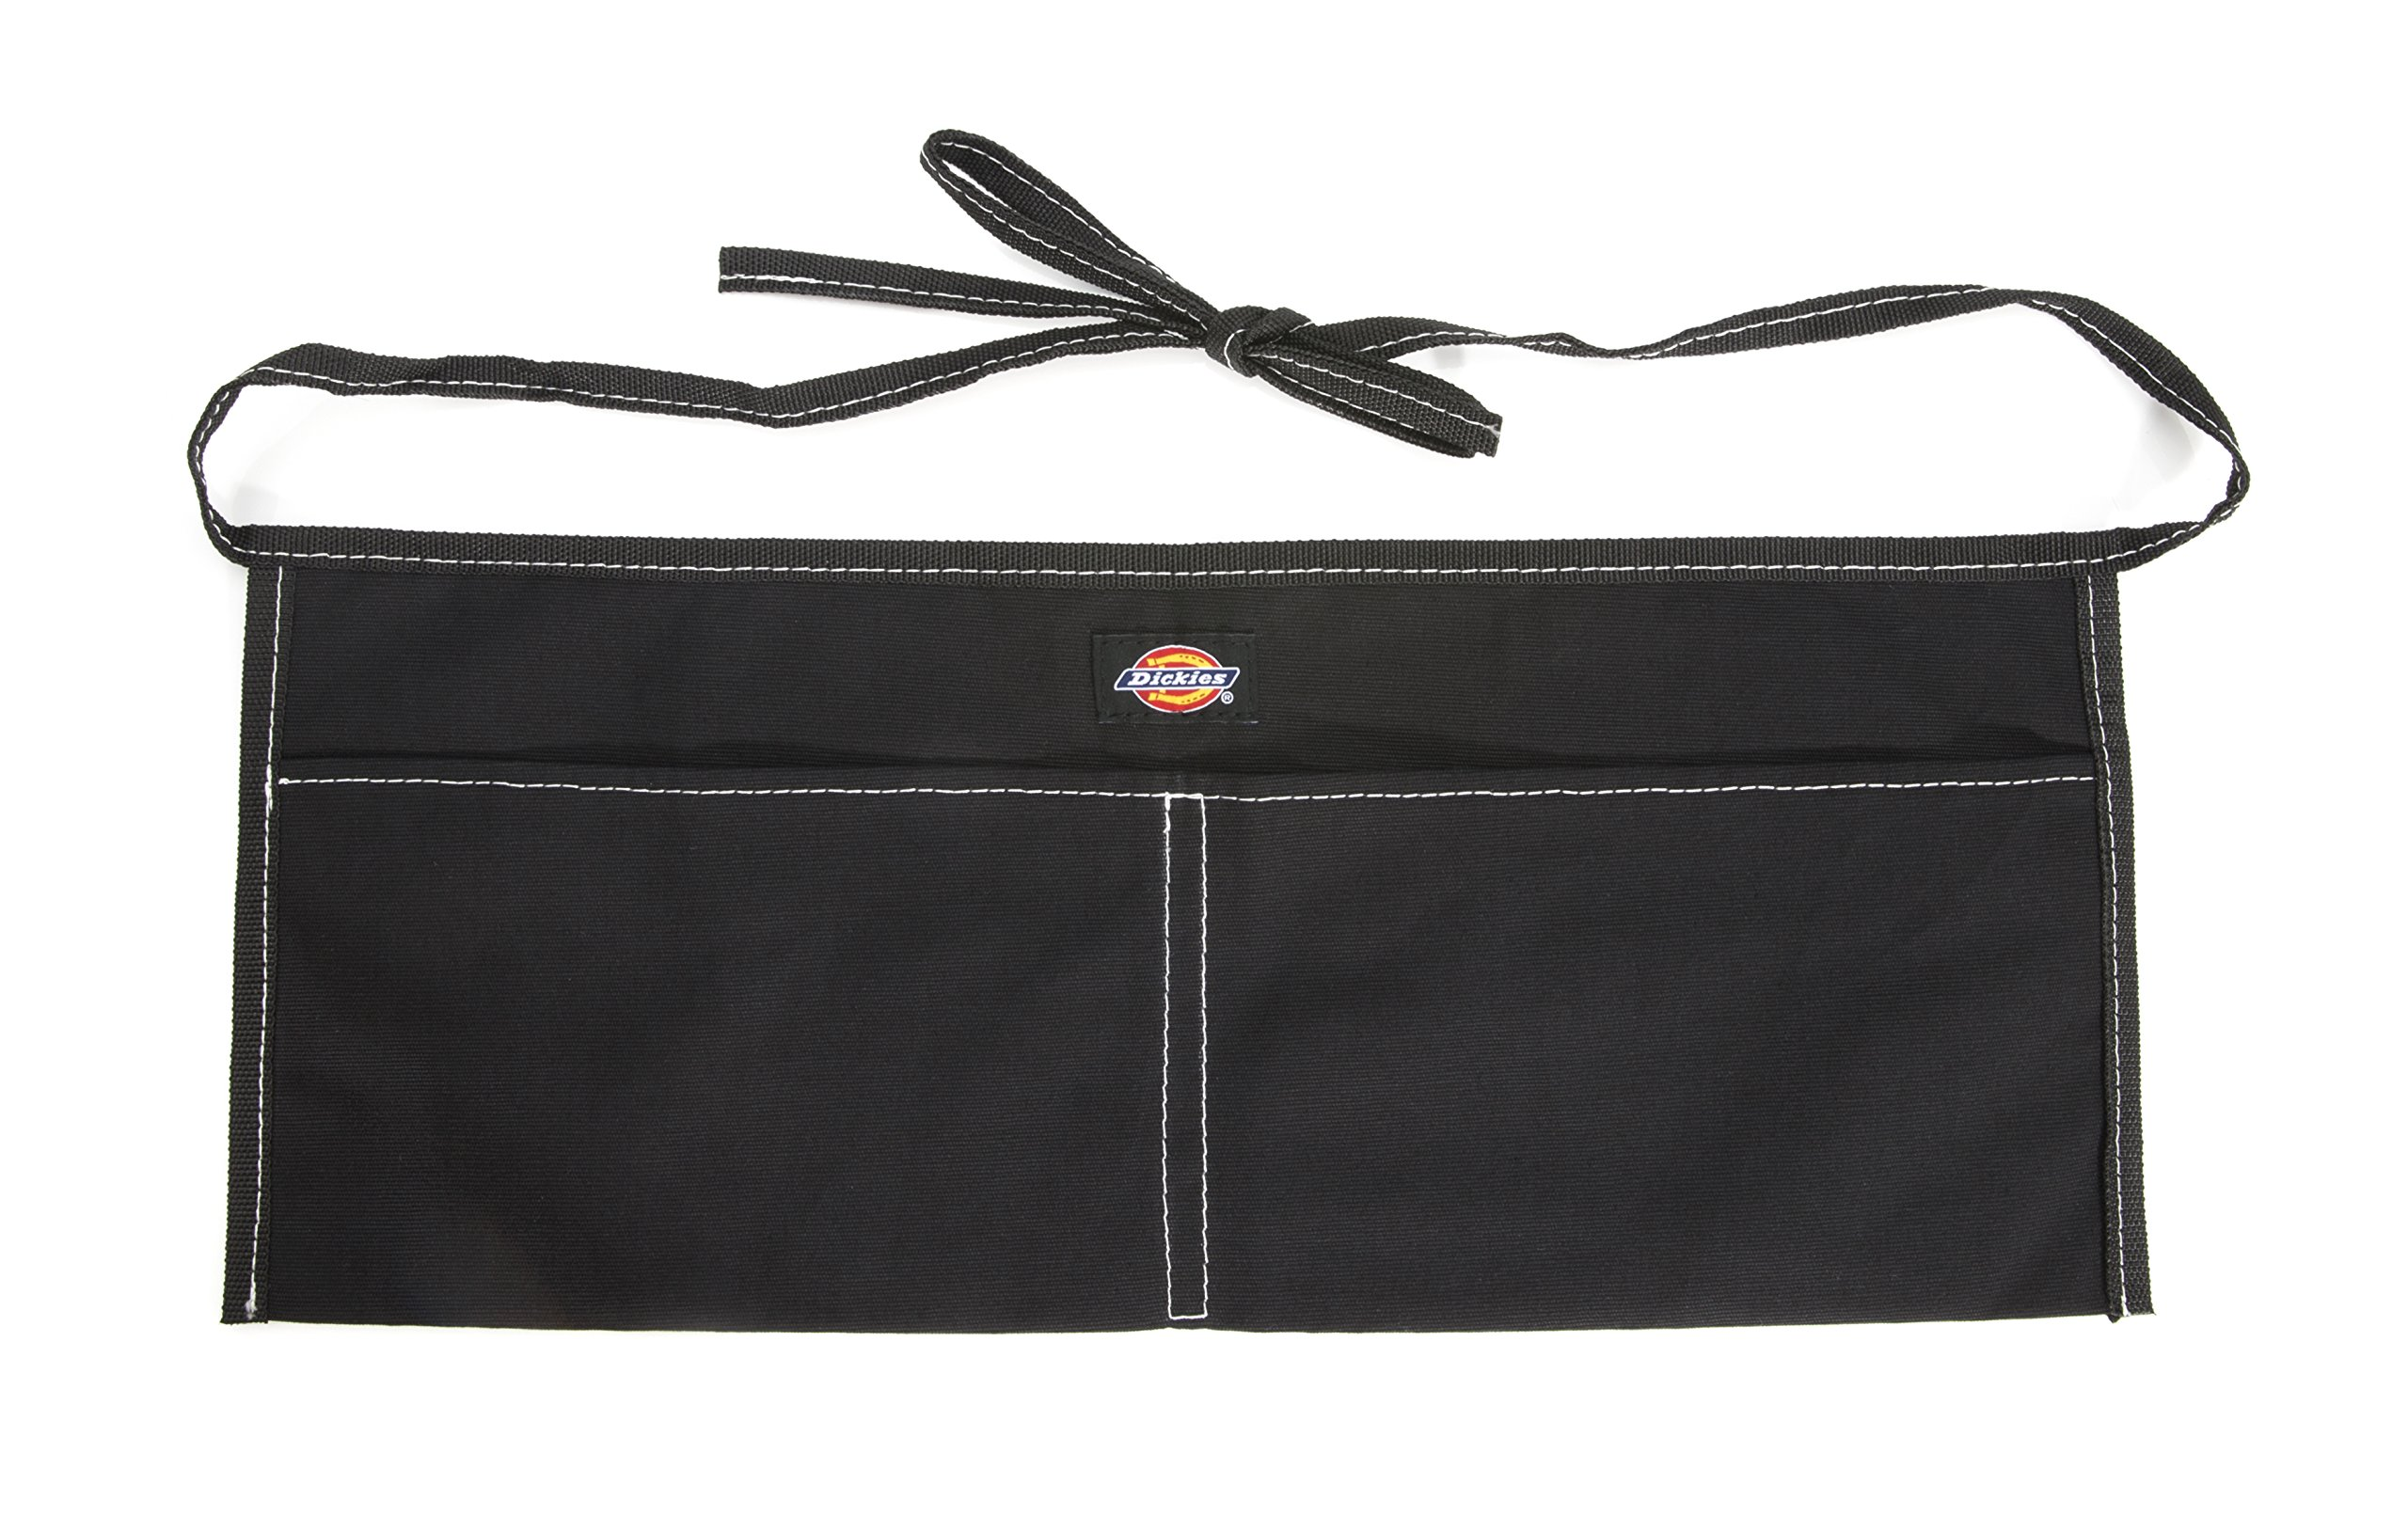 Dickies Work Gear 57078 Black 2-Pocket Canvas Apron